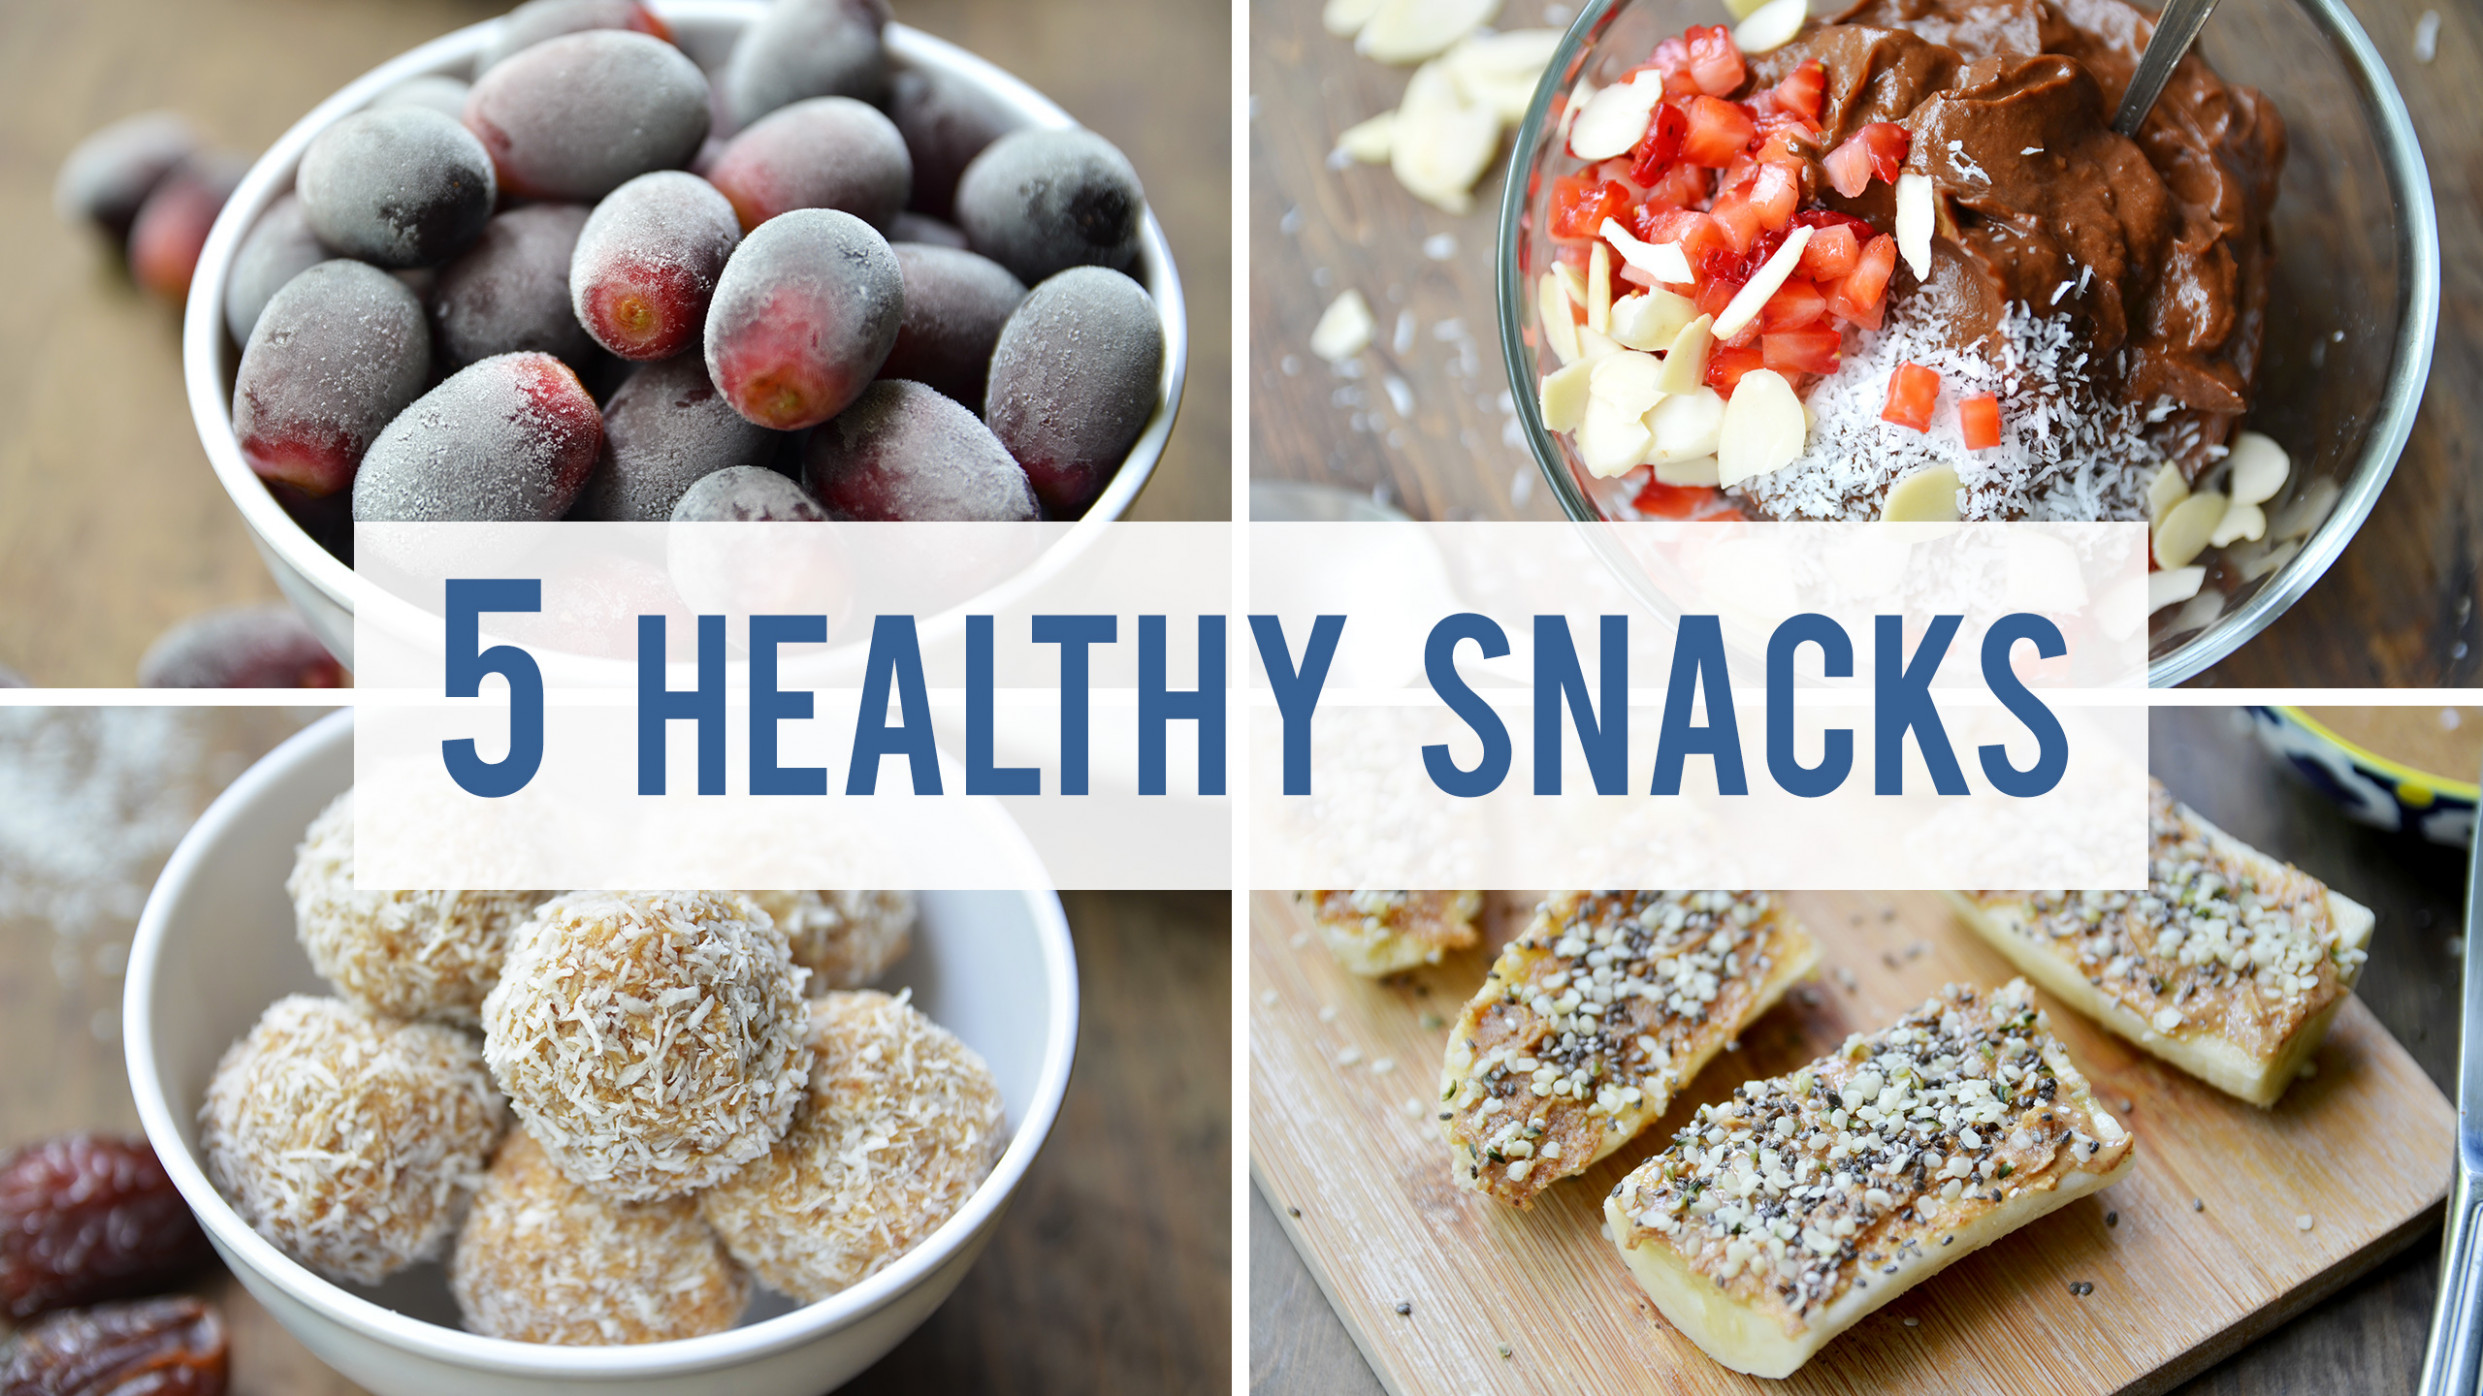 5 Healthy Snacks For Your Sweet Tooth - Fablunch - recipes snacks healthy